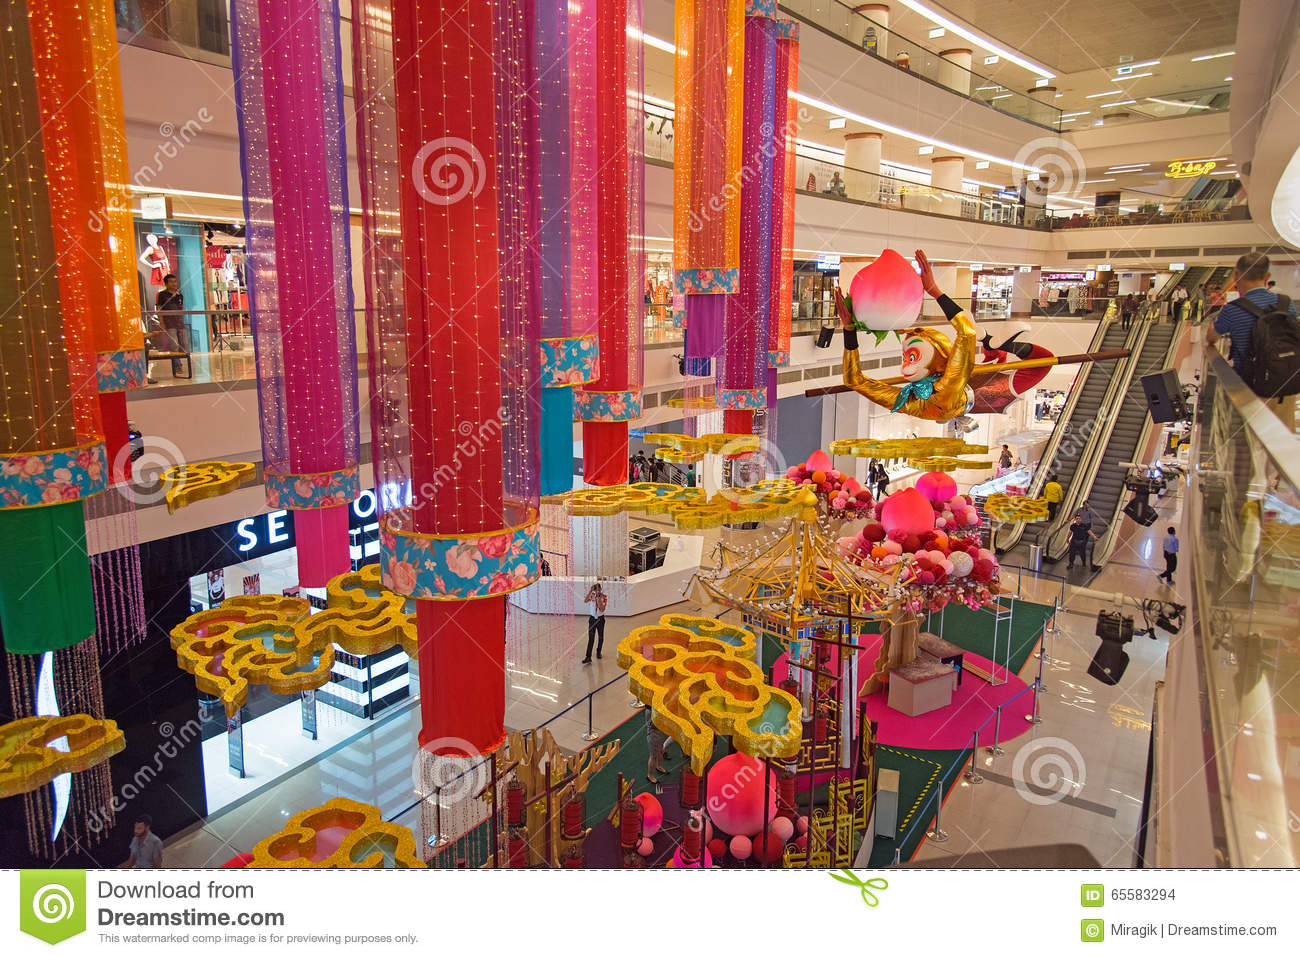 Avenue k shopping mall interior editorial stock image for Interior decoration for new year